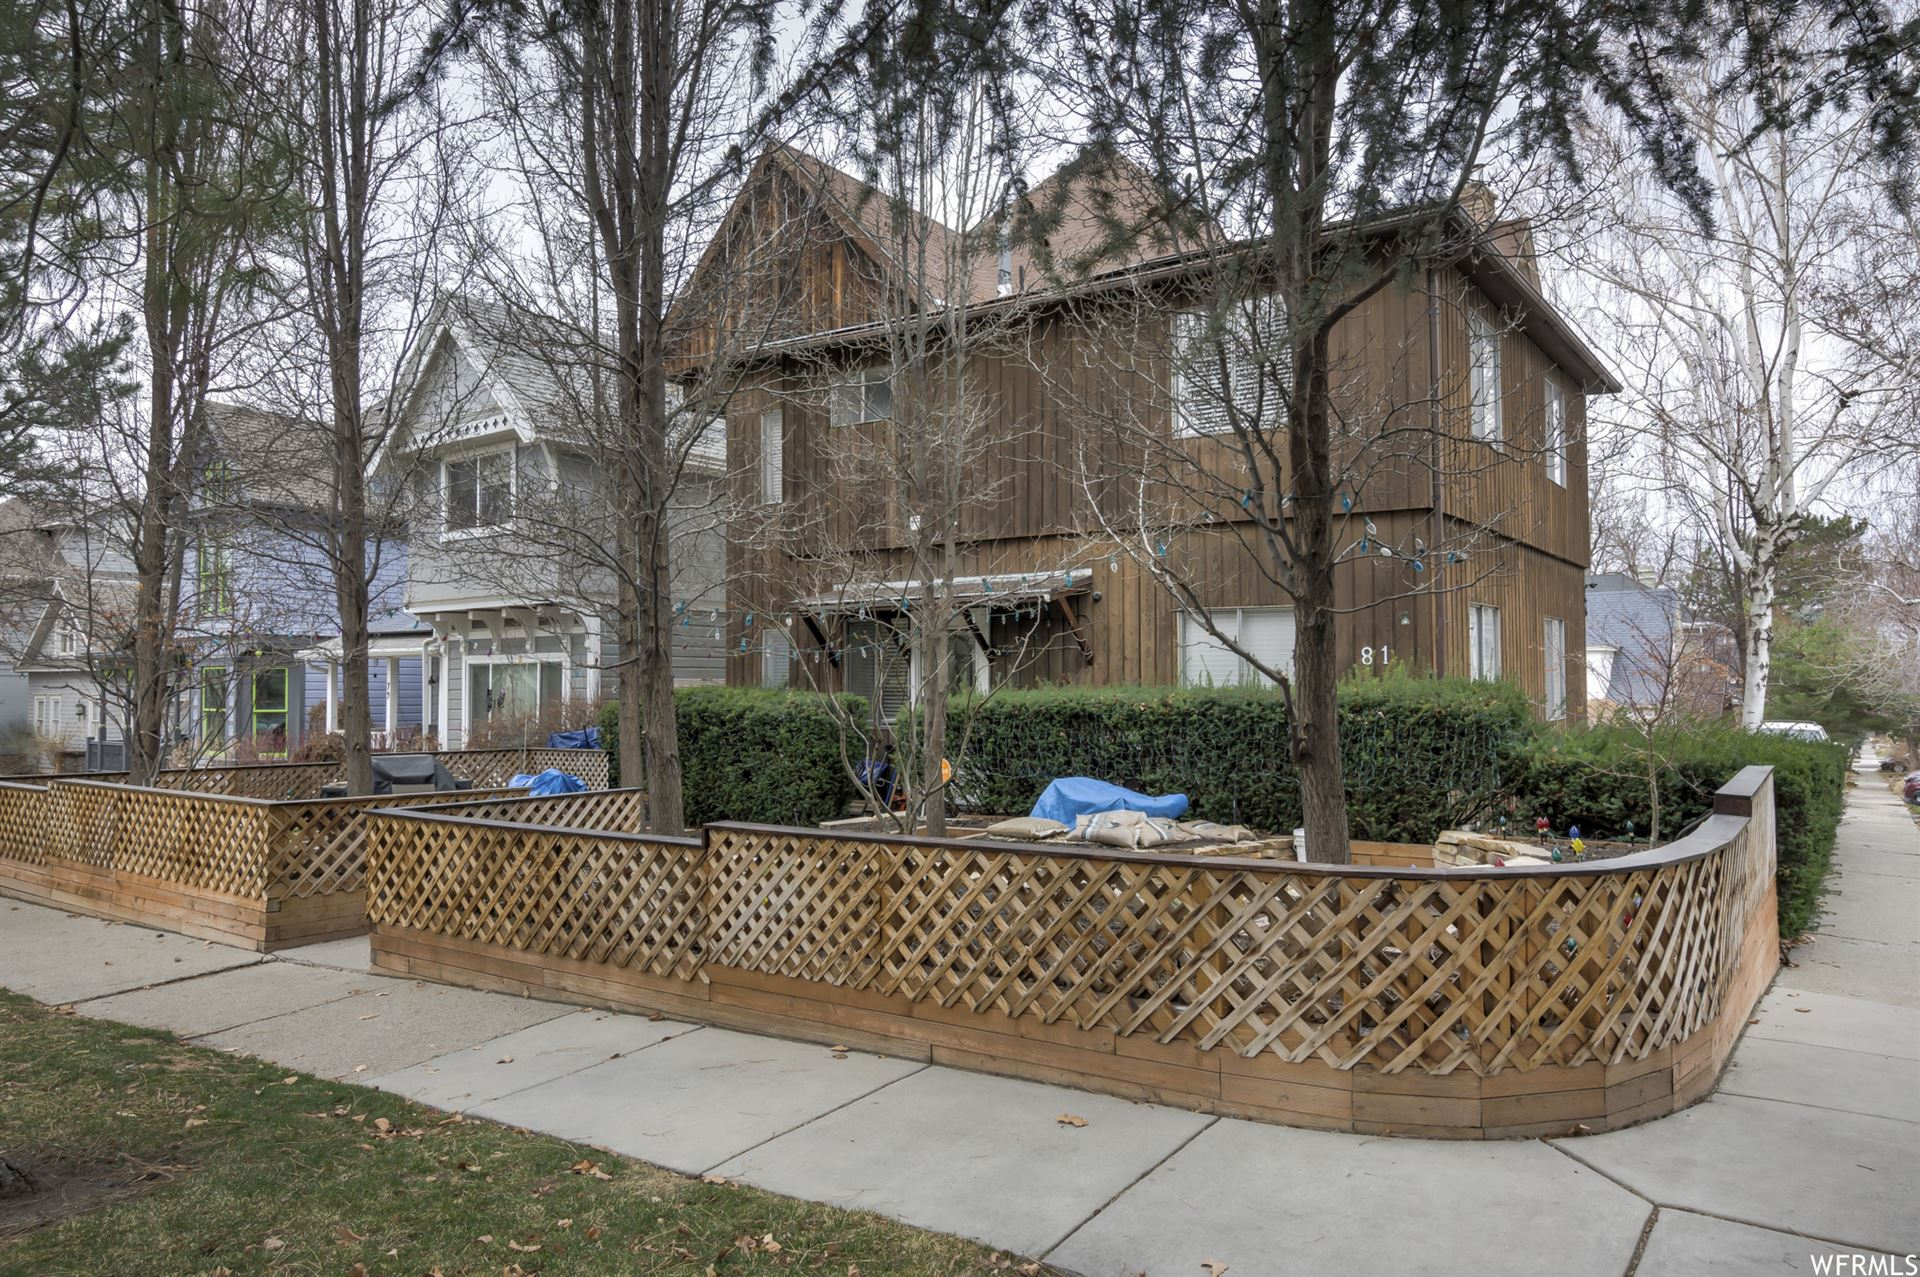 Photo of 81 S ST, Salt Lake City, UT 84103 (MLS # 1734115)